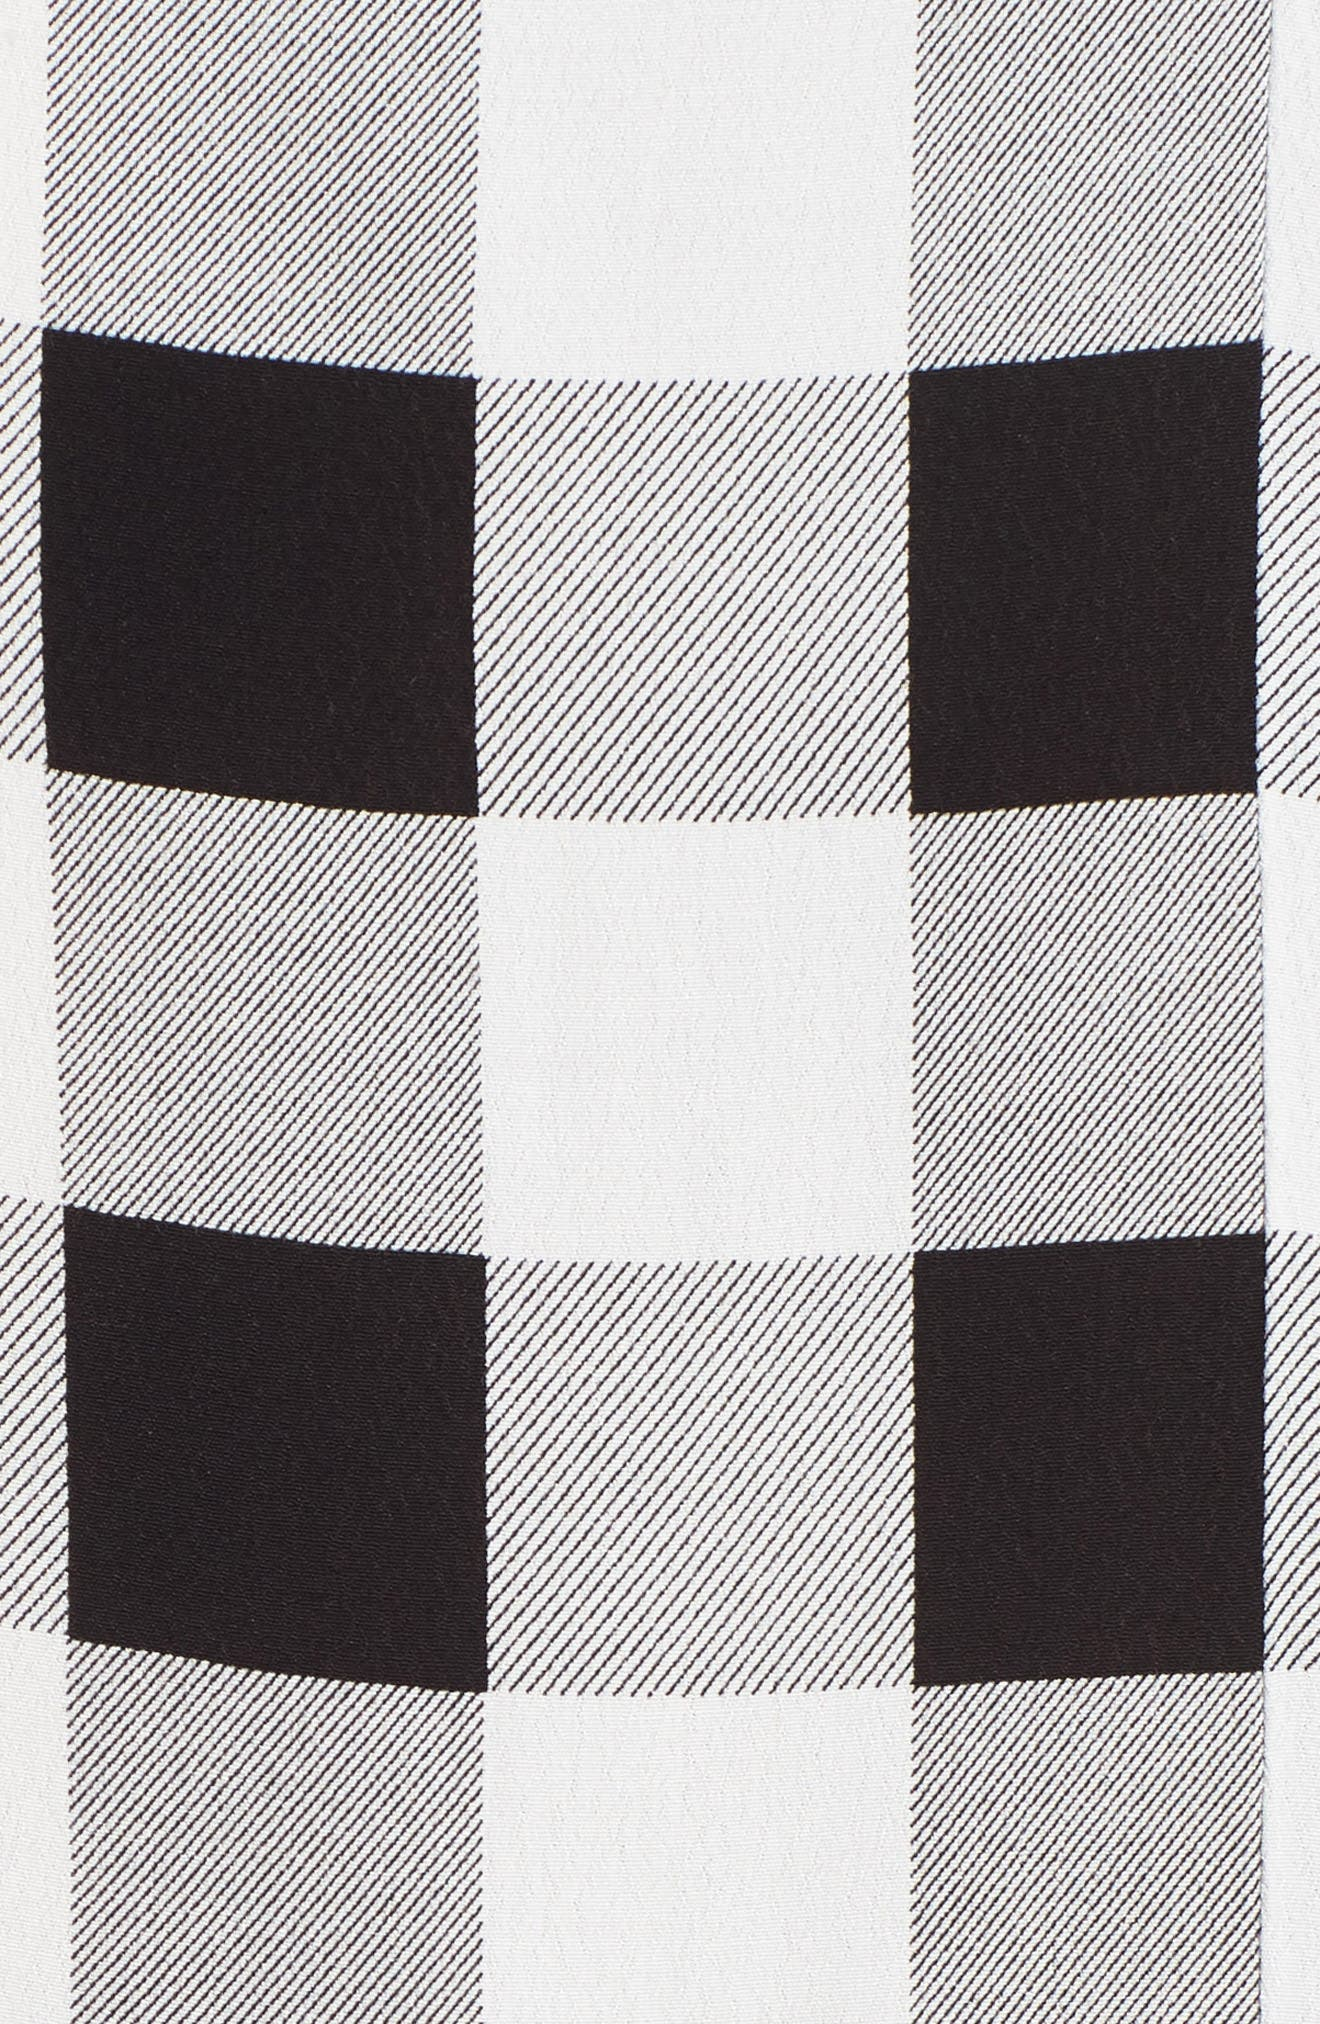 Cora Midi Dress,                             Alternate thumbnail 5, color,                             Noir Blanc Gingham